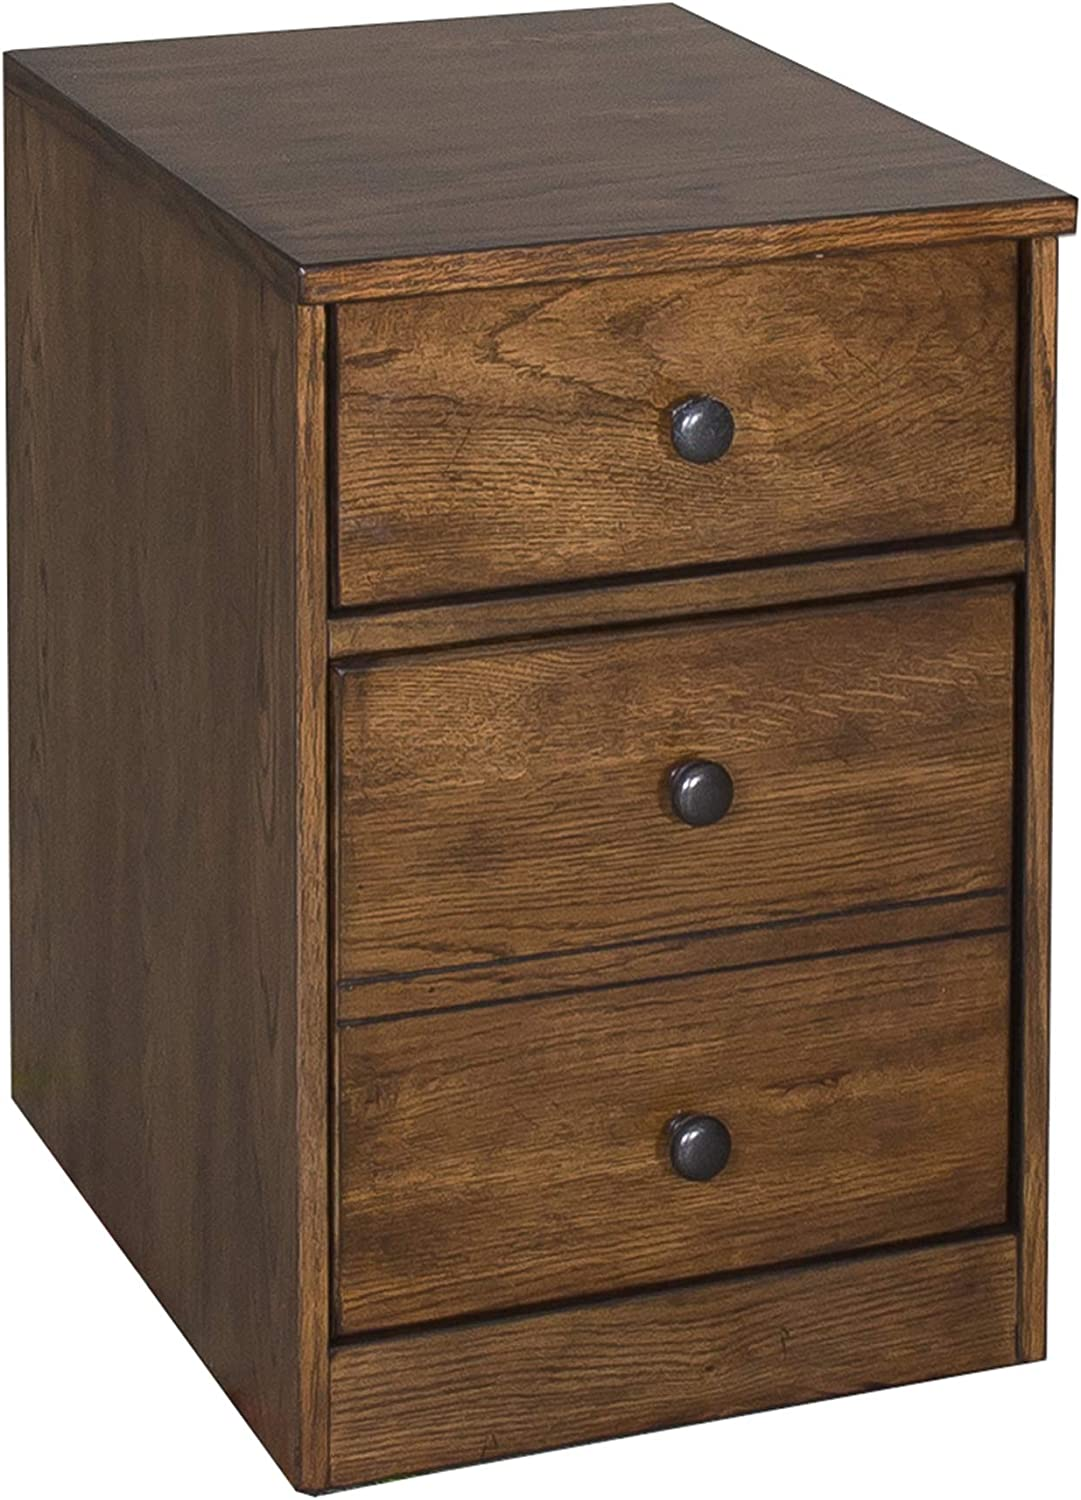 Liberty Furniture Industries Hearthstone Mobile File Cabinet, W16 x D21 x H23, Dark Brown